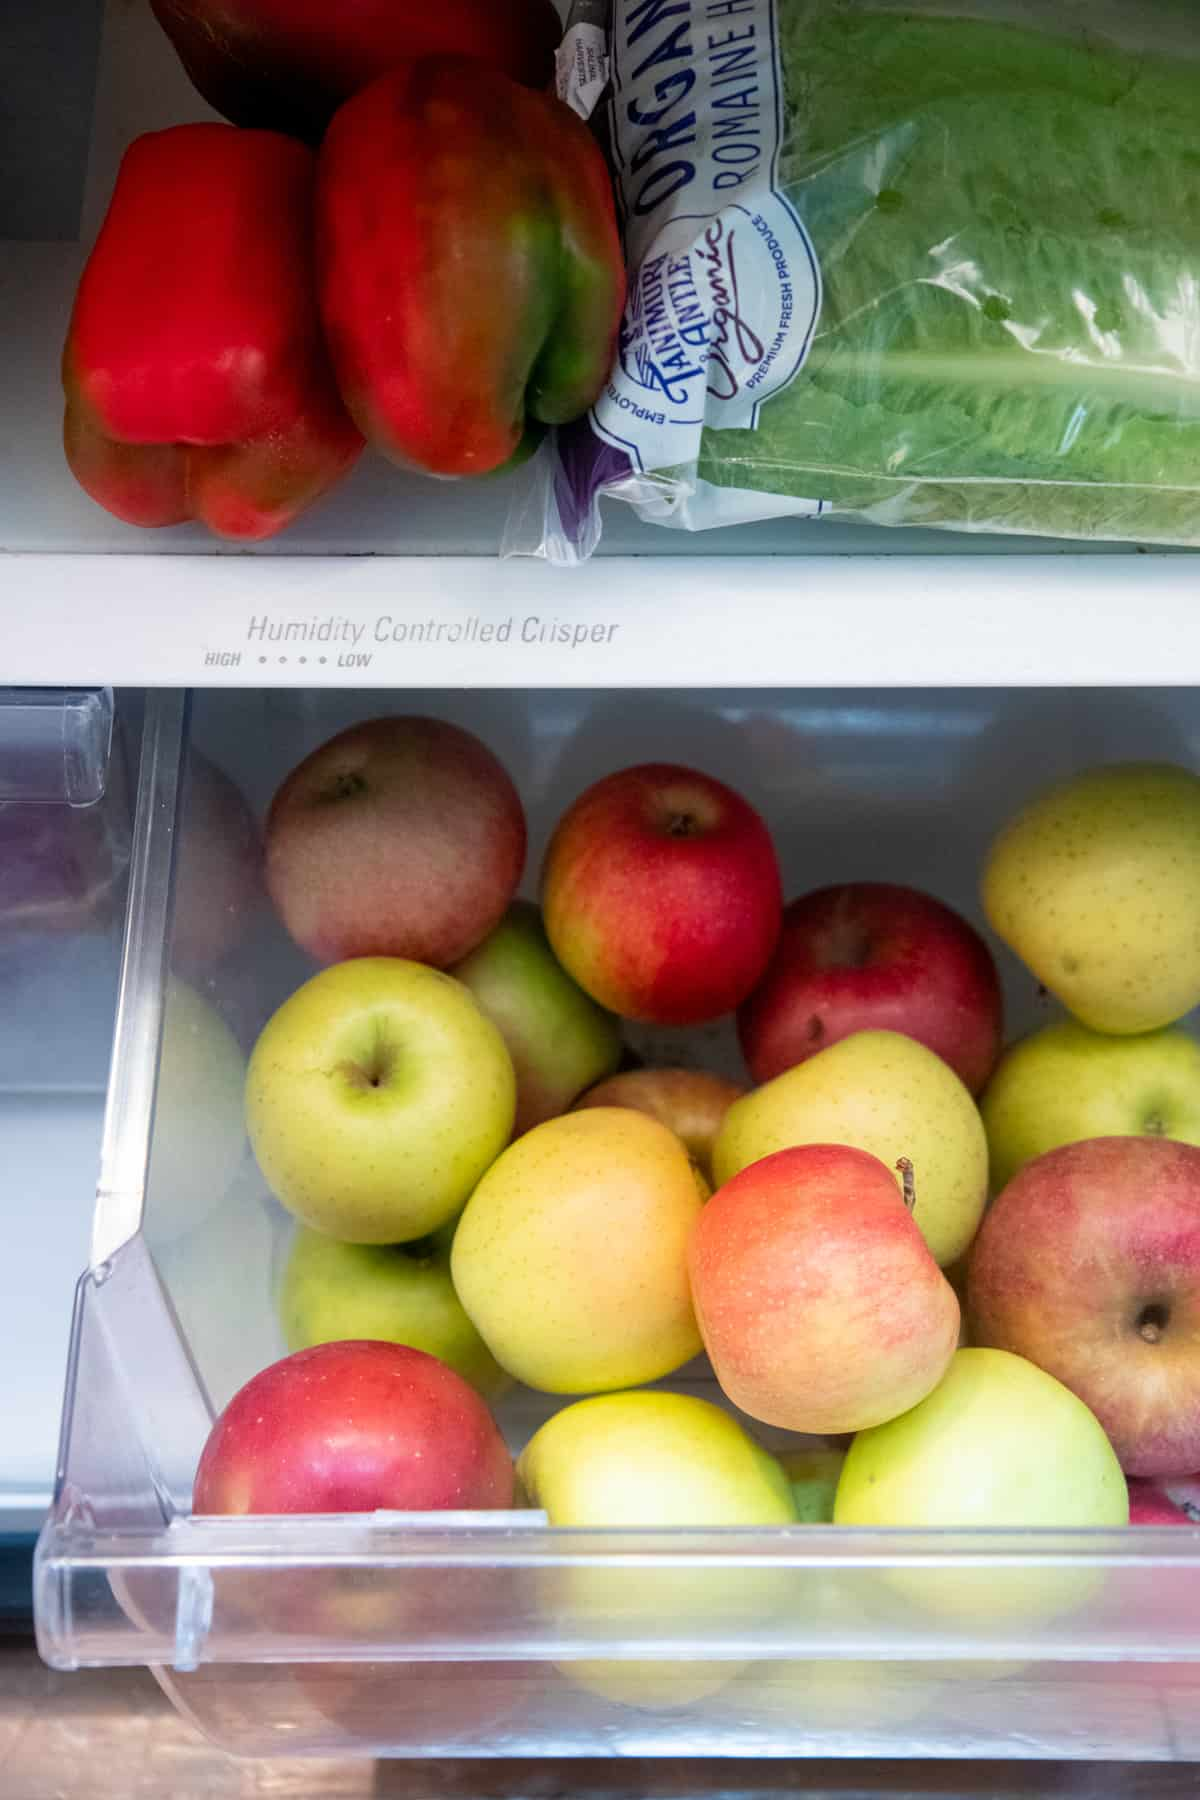 Green, yellow, and red apples are piled in a crisper of a refrigerator.